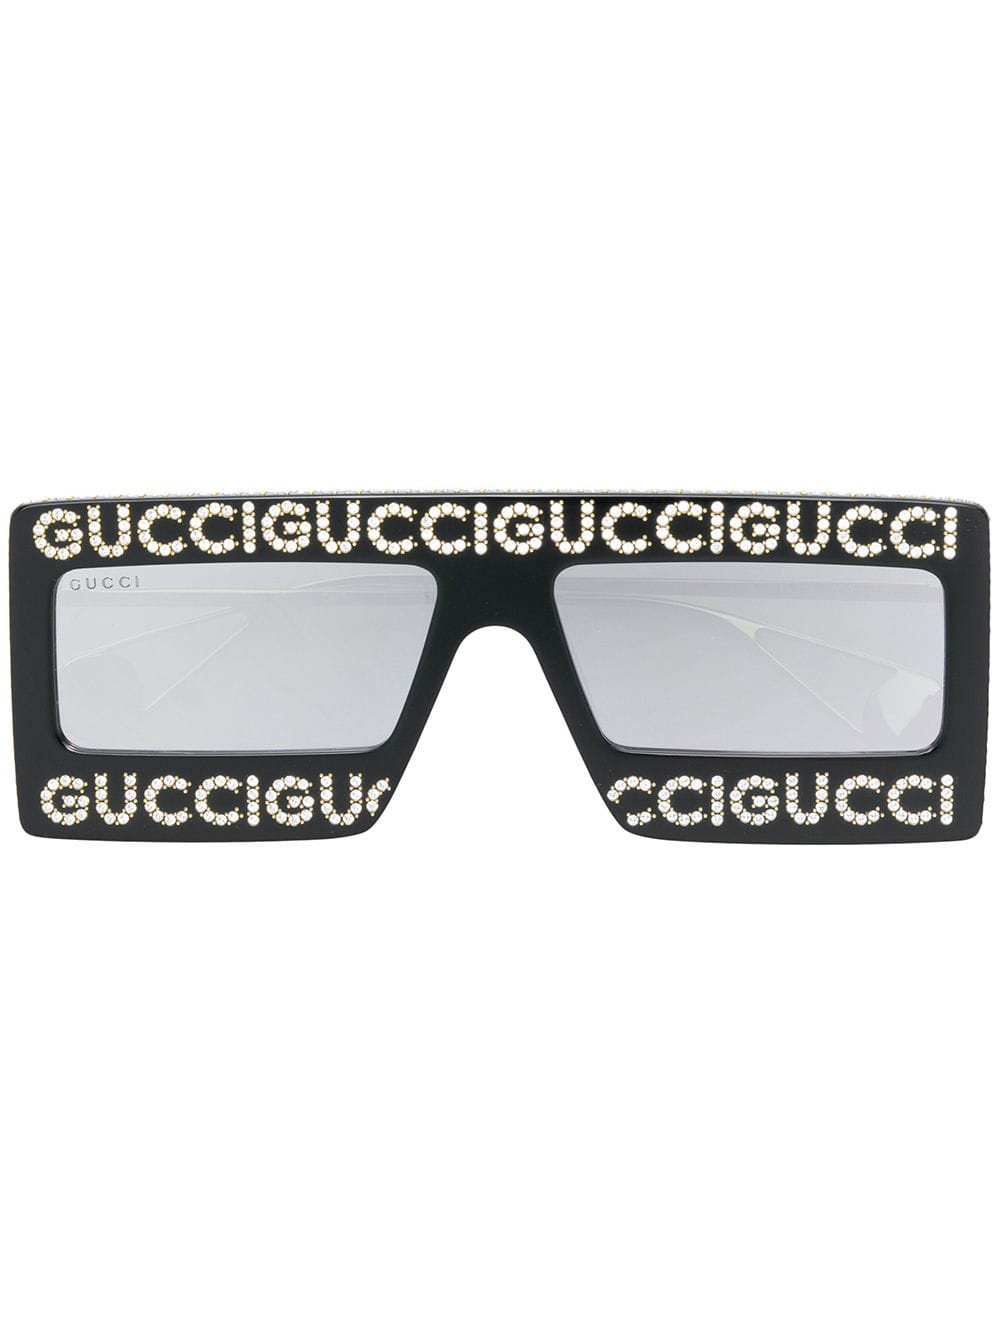 94c949ef1f133 gucci-eyewear-mask-frame-sunglasses-black-farfetch-com-photo.jpg 1548242174